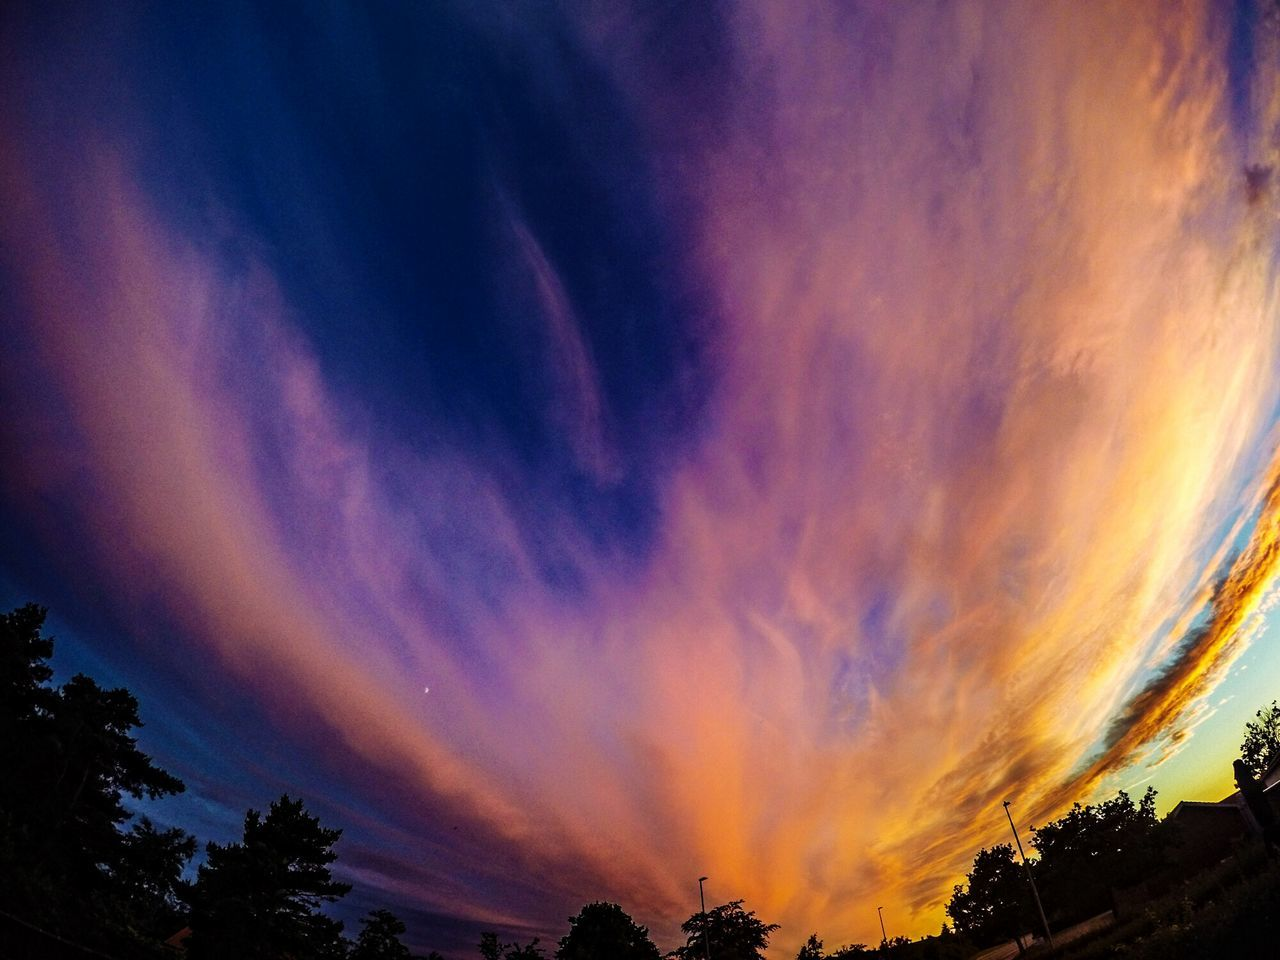 Sky Skyporn Sky And Clouds Sky_collection Skylovers Sky Only Nature Naturelovers Nature Photography Aftersunset Relaxing Hello World Check This Out Photooftheday Nature_perfection Gopro Goprohero4 Goprooftheday GoPrography Gopro Shots Goprouniverse Goprolife Goprophotography Gopronation